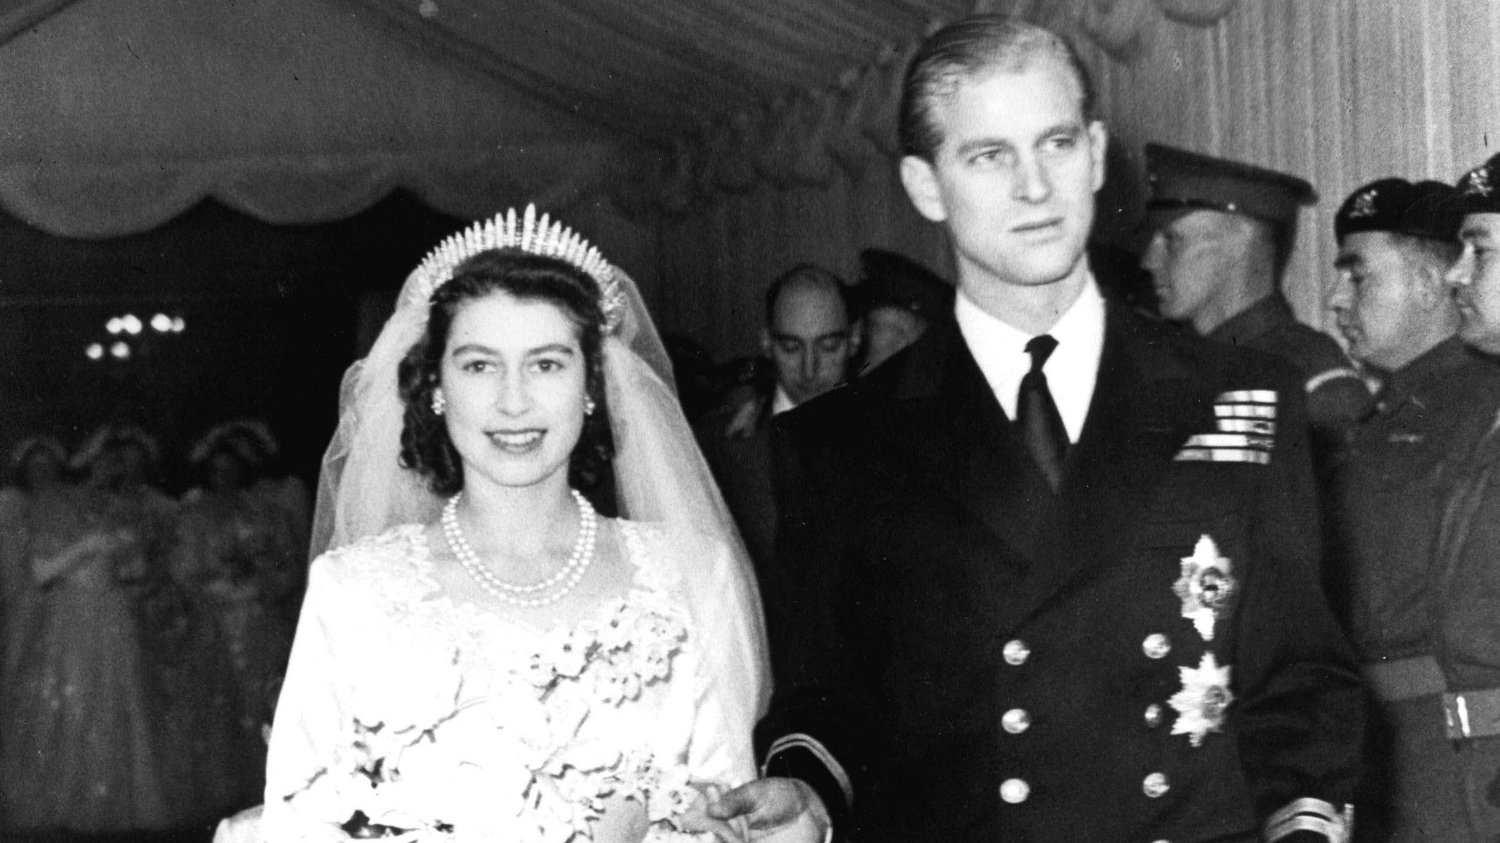 Princess Beatrice wedding File photo dated 20/11/1947 of Queen Elizabeth II alongside the Duke of Edinburgh as they leave Westminster Abbey after their marriage ceremony. The Queen is wearing the same tiara that was worn by Princess Beatrice at her wedding to Edoardo Mapelli Mozzi on Friday.